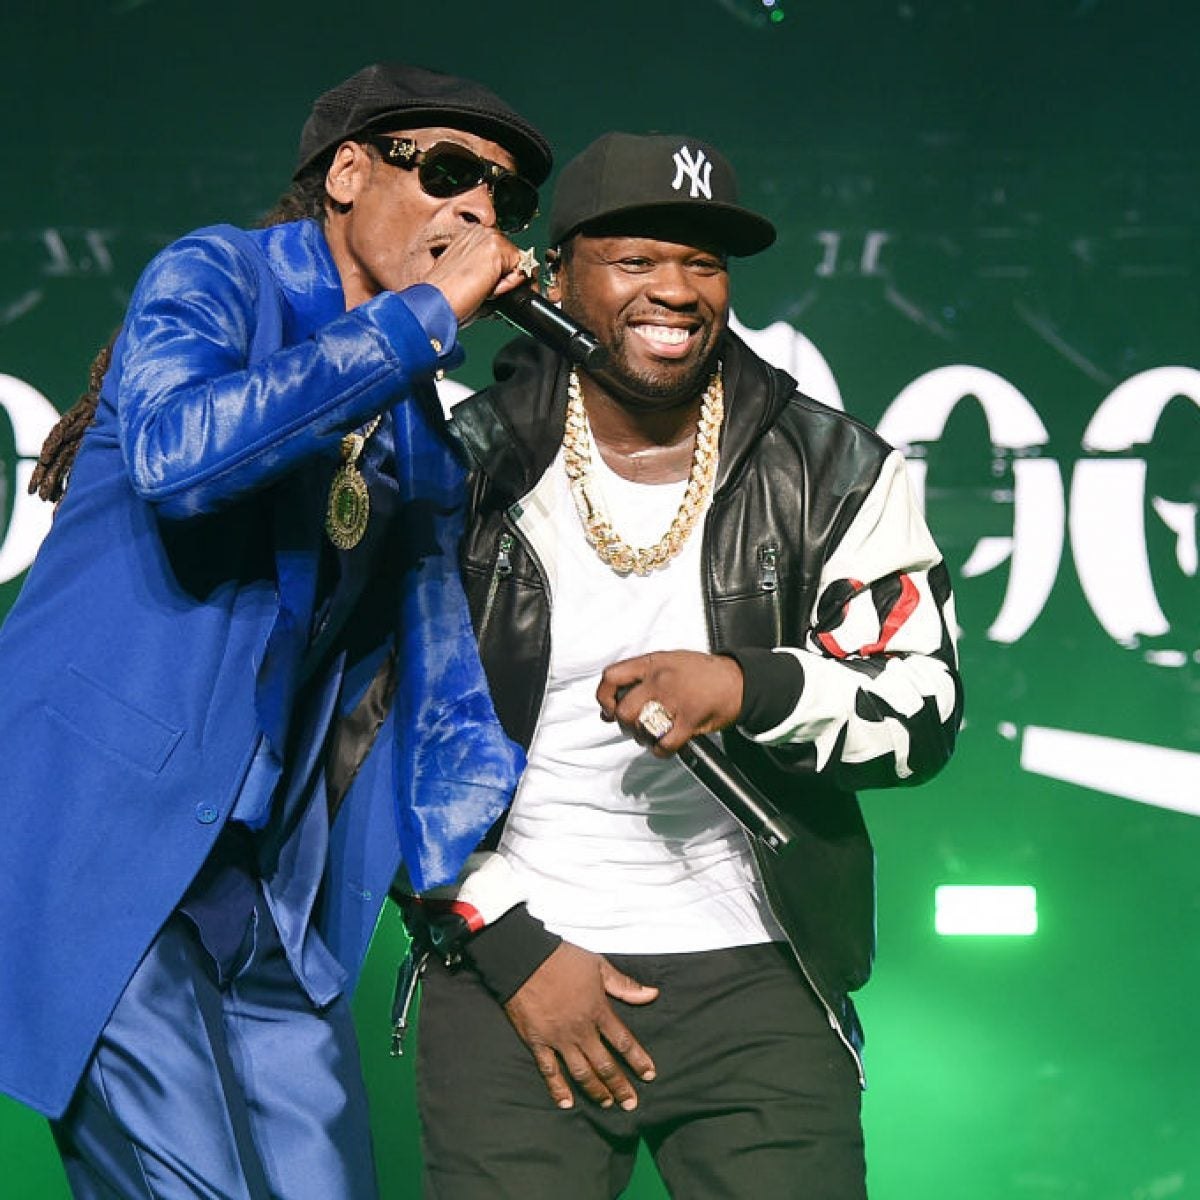 50 Cent Wants To Go Against Snoop Dogg In Verzuz Battle